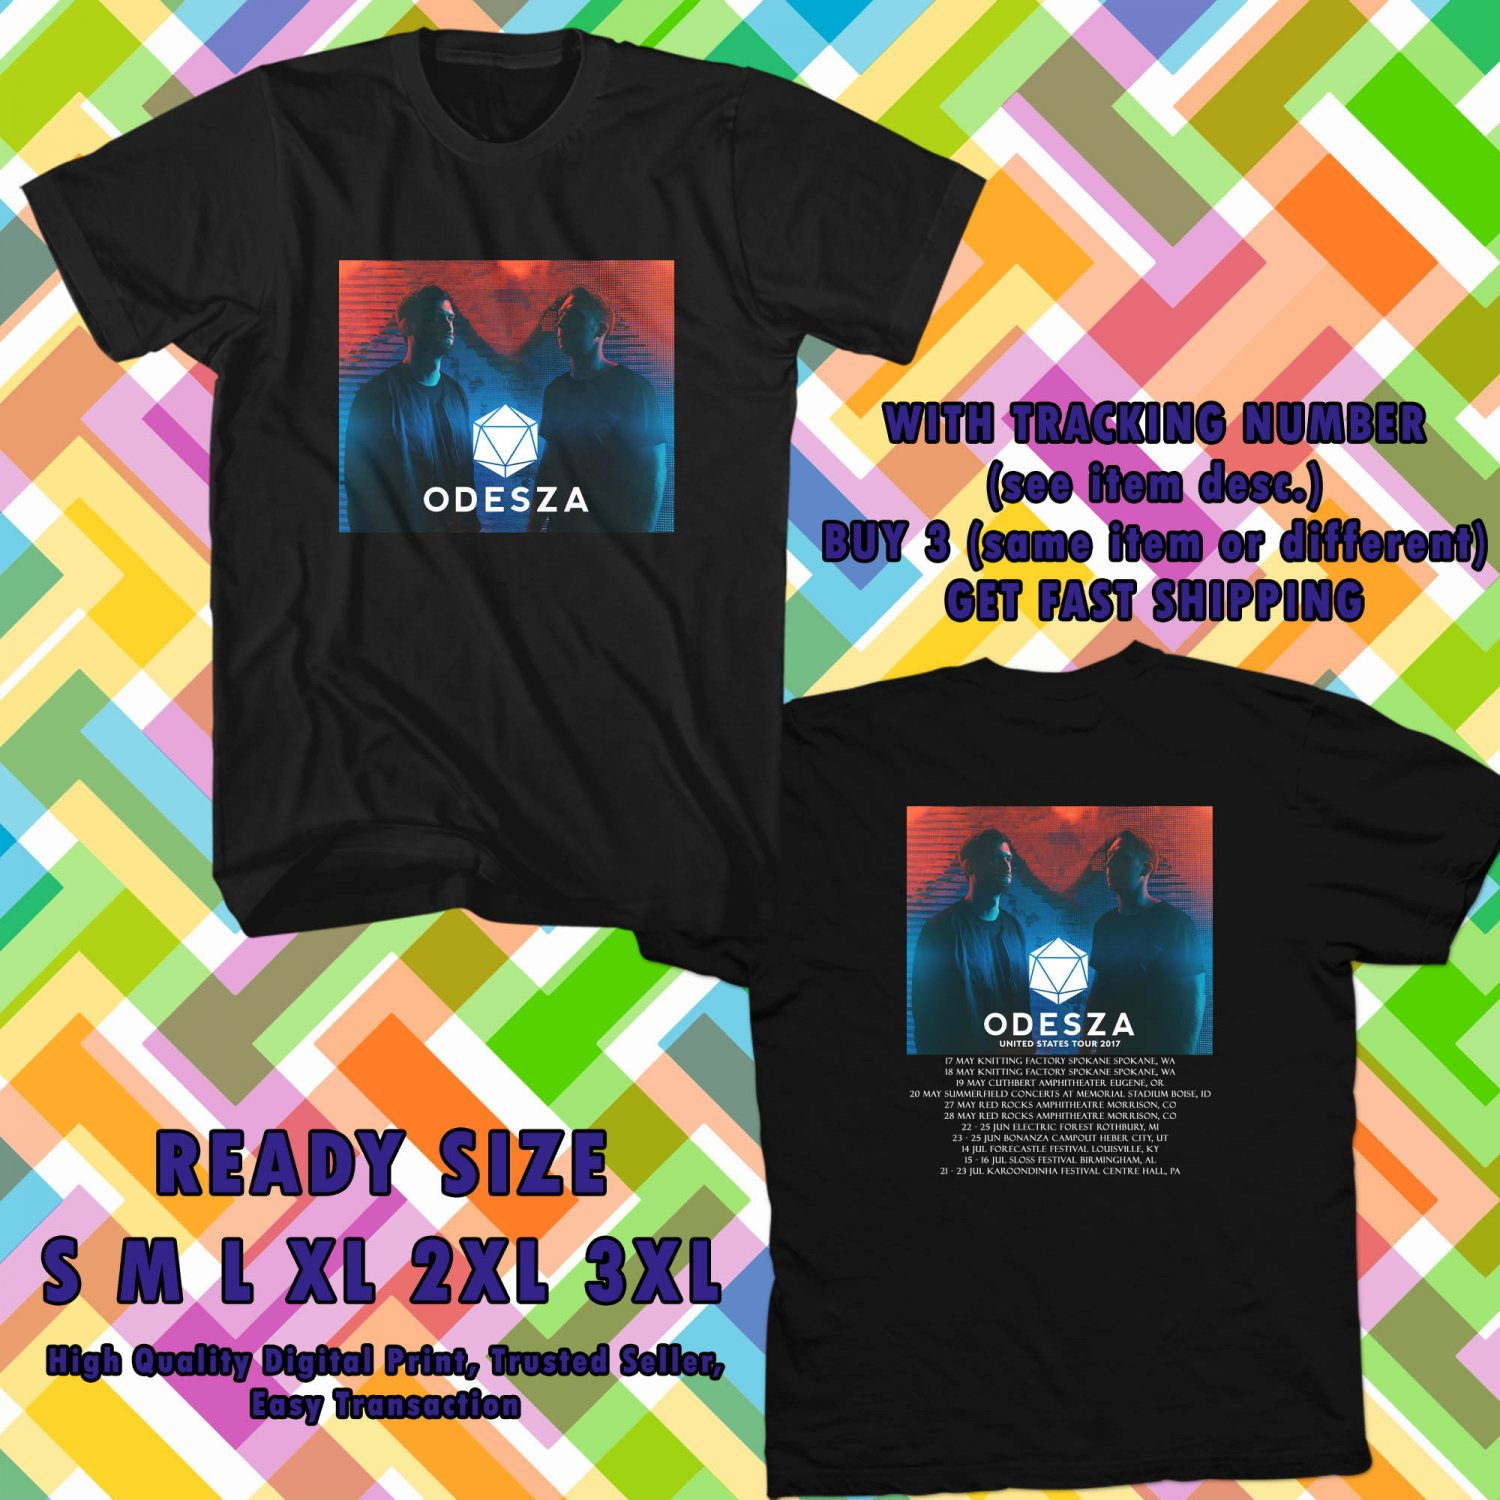 NEW ODESZA UNITED STATES TOUR 2017 black TEE 2 SIDE DMTR 443